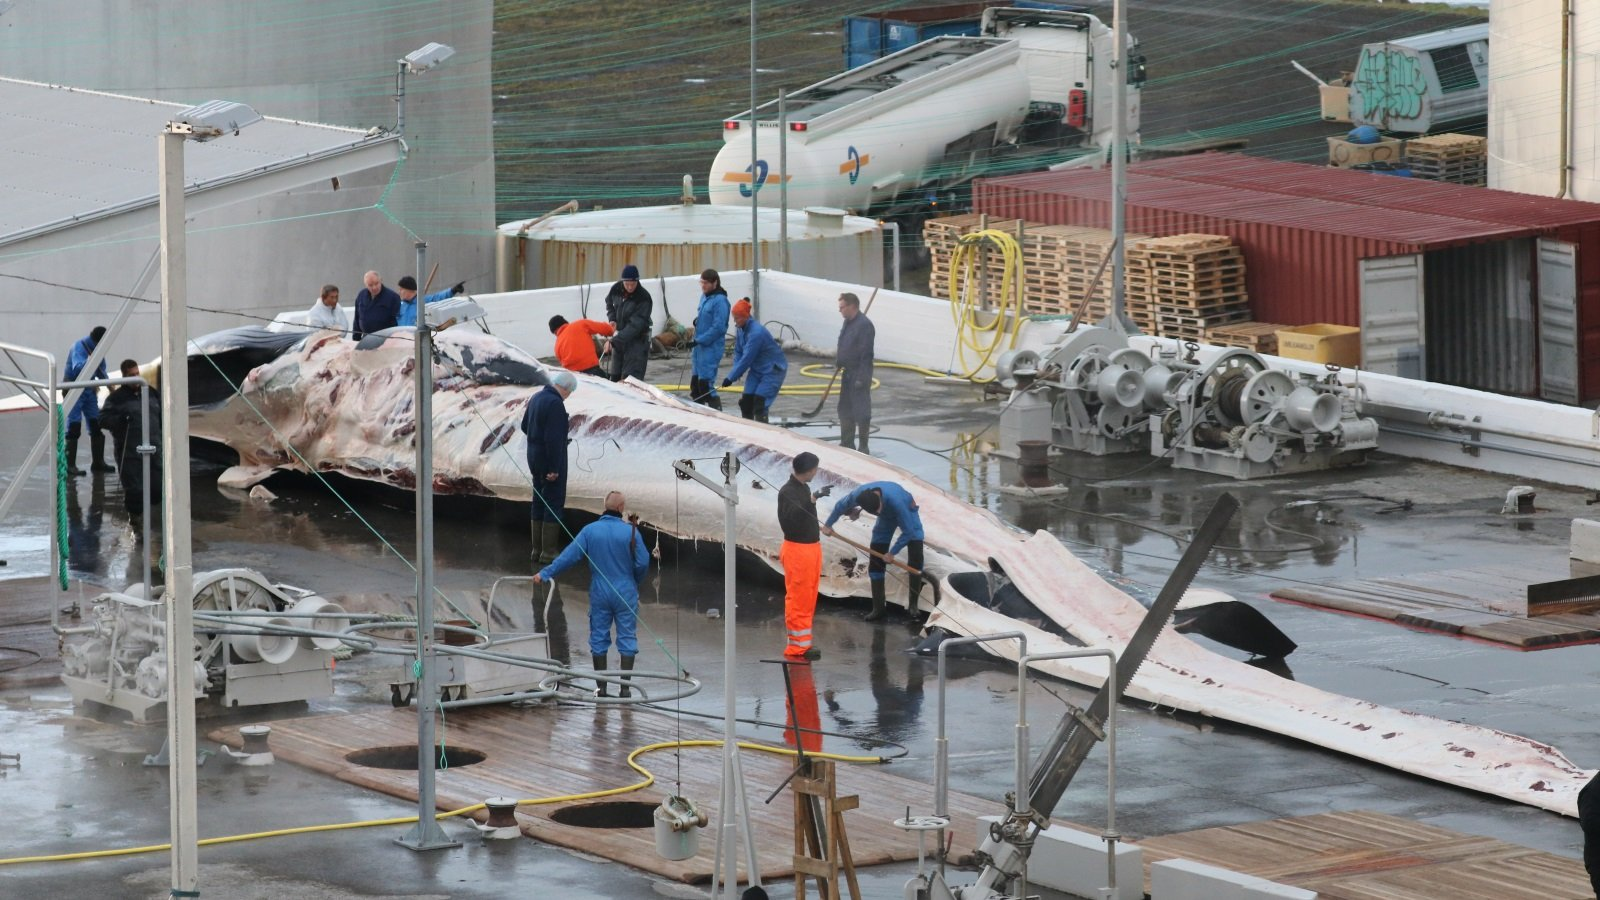 Iceland's Commercial Whaling of Endangered Fin Whales